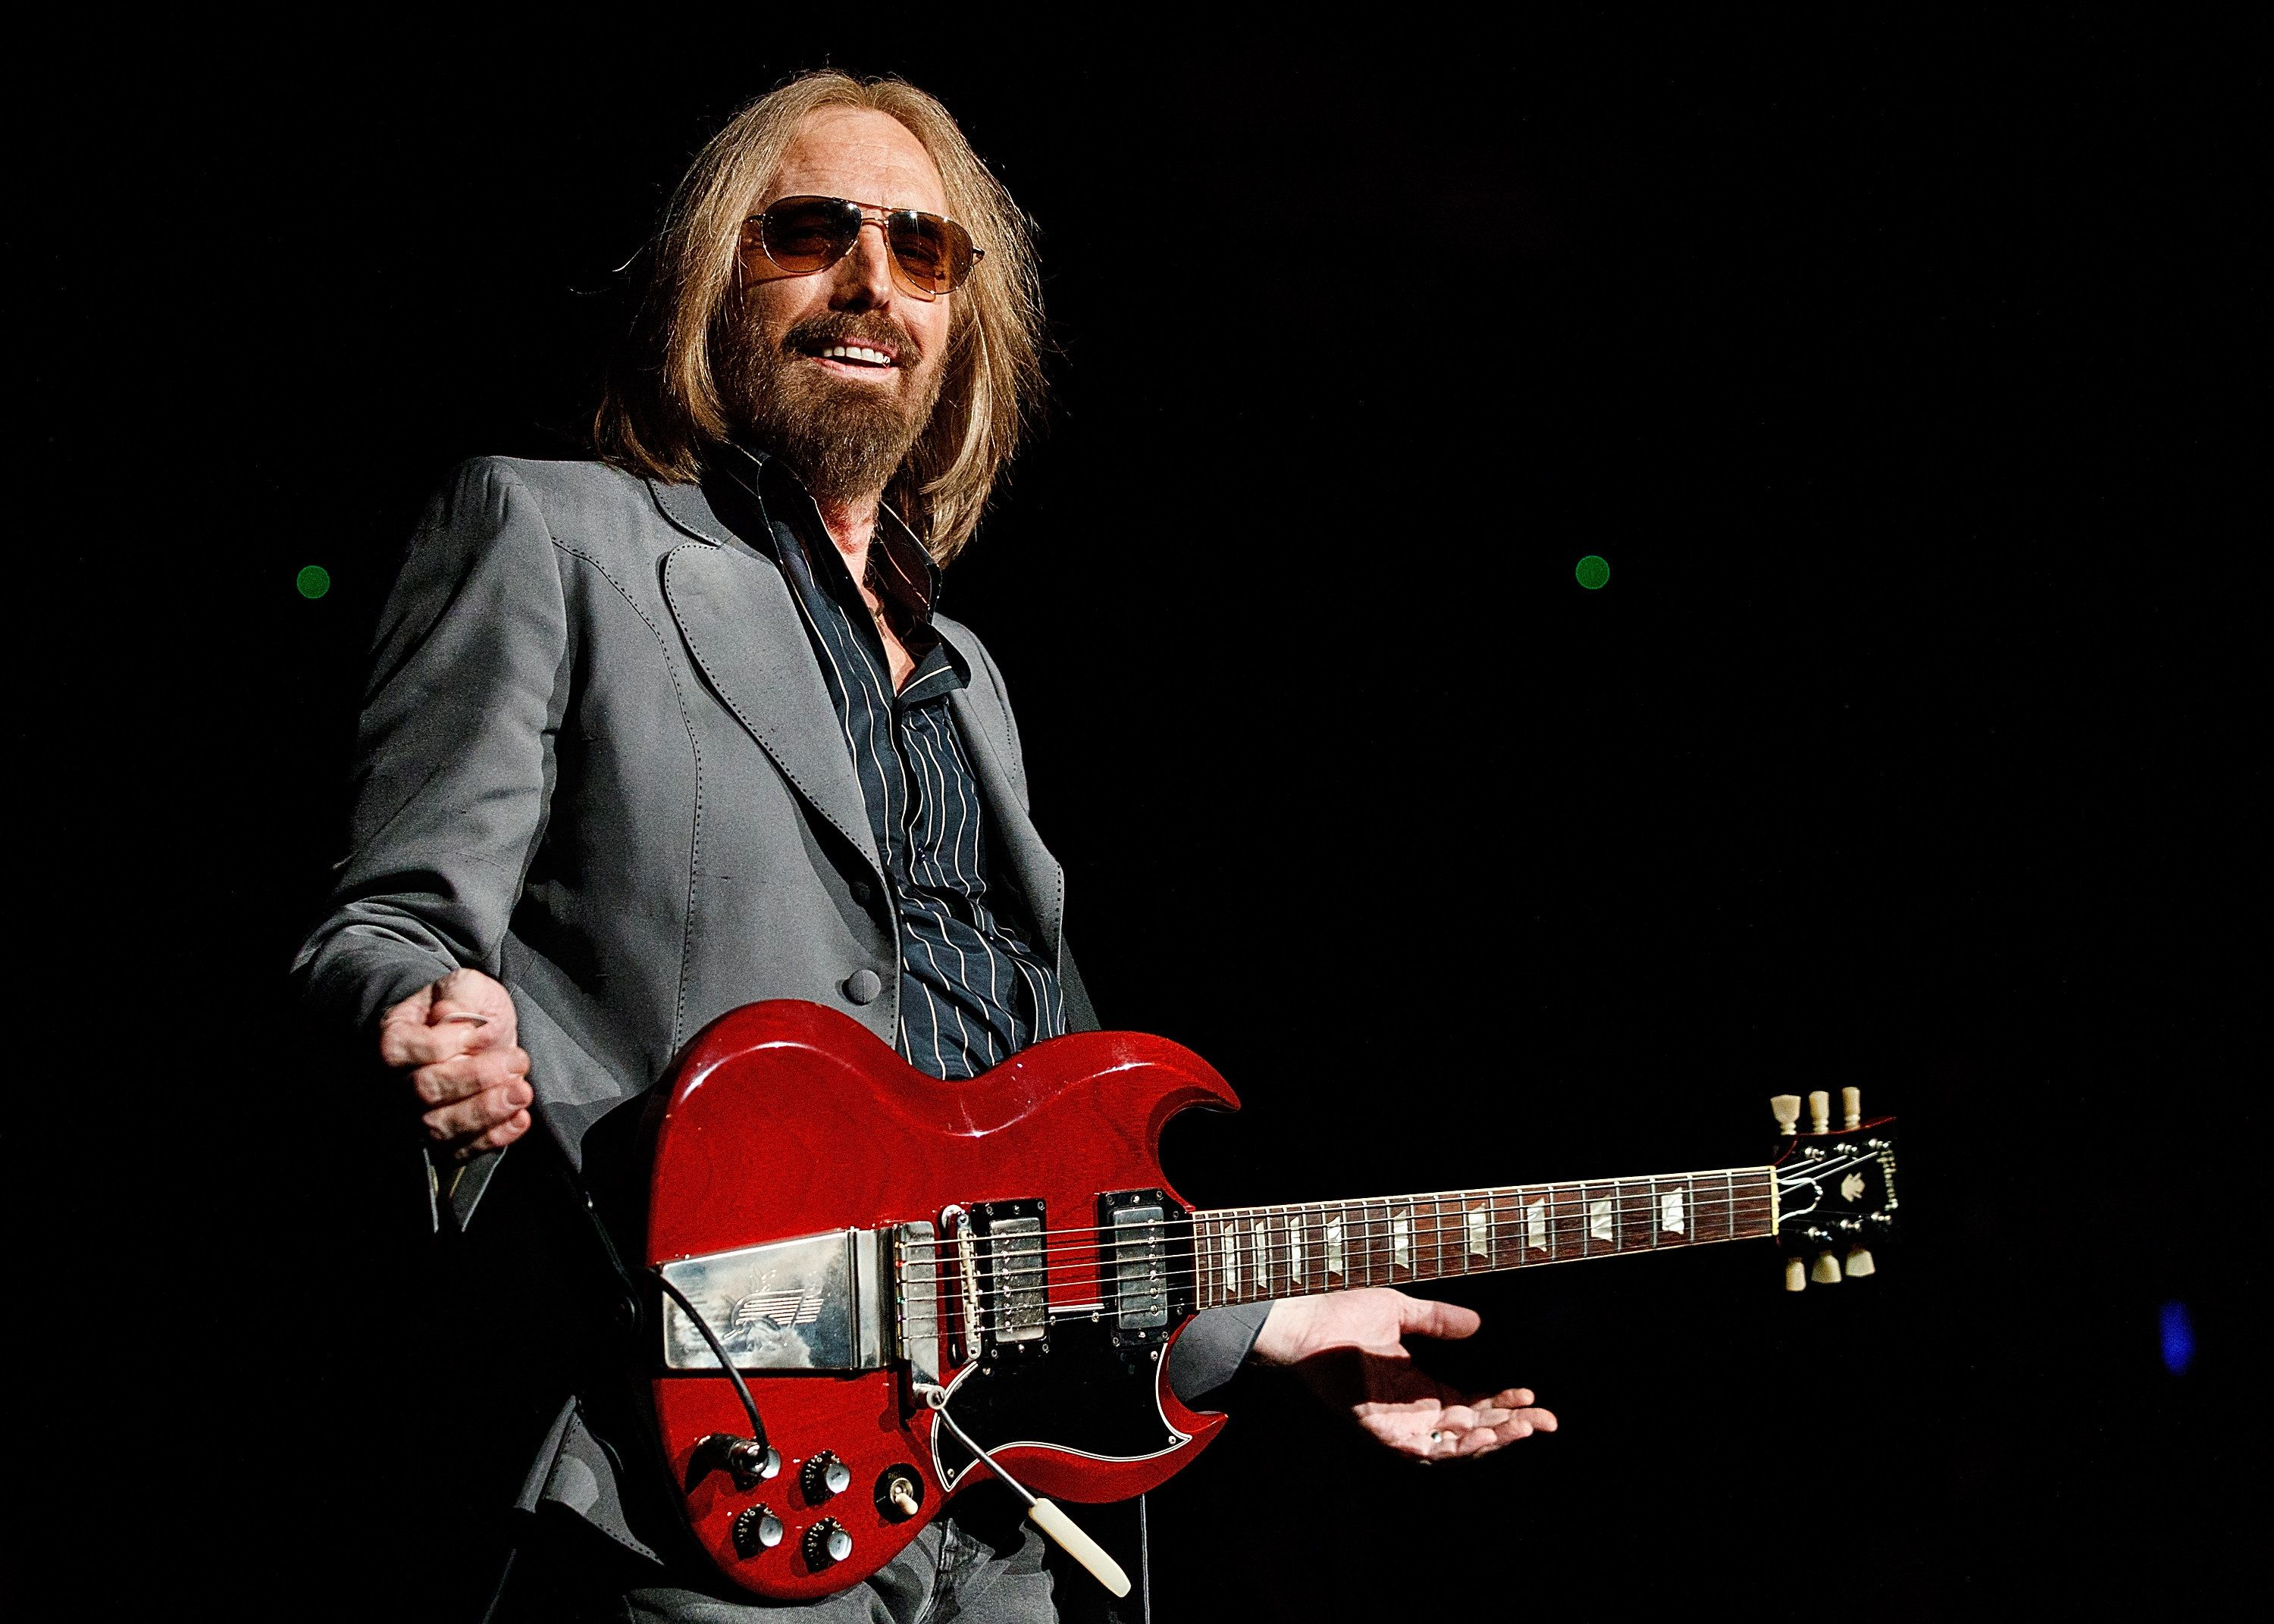 VANCOUVER, BC - AUGUST 17:  Tom Petty of Tom Petty and the Heartbreakers performs on stage at Pepsi Live at Rogers Arena on August 17, 2017 in Vancouver, Canada.  (Photo by Andrew Chin/Getty Images for ABA)